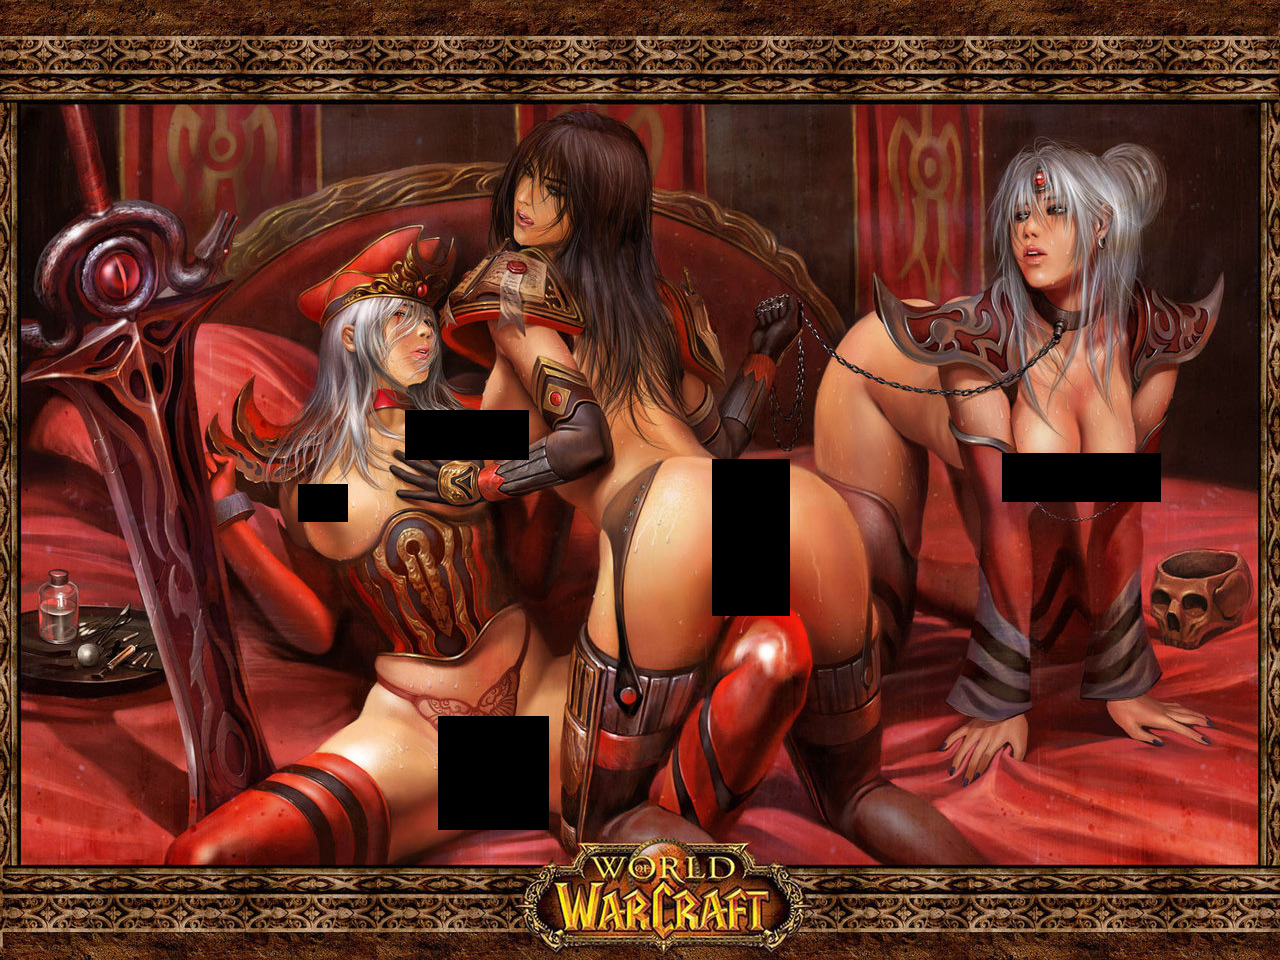 Warcraft naked players hentai picture